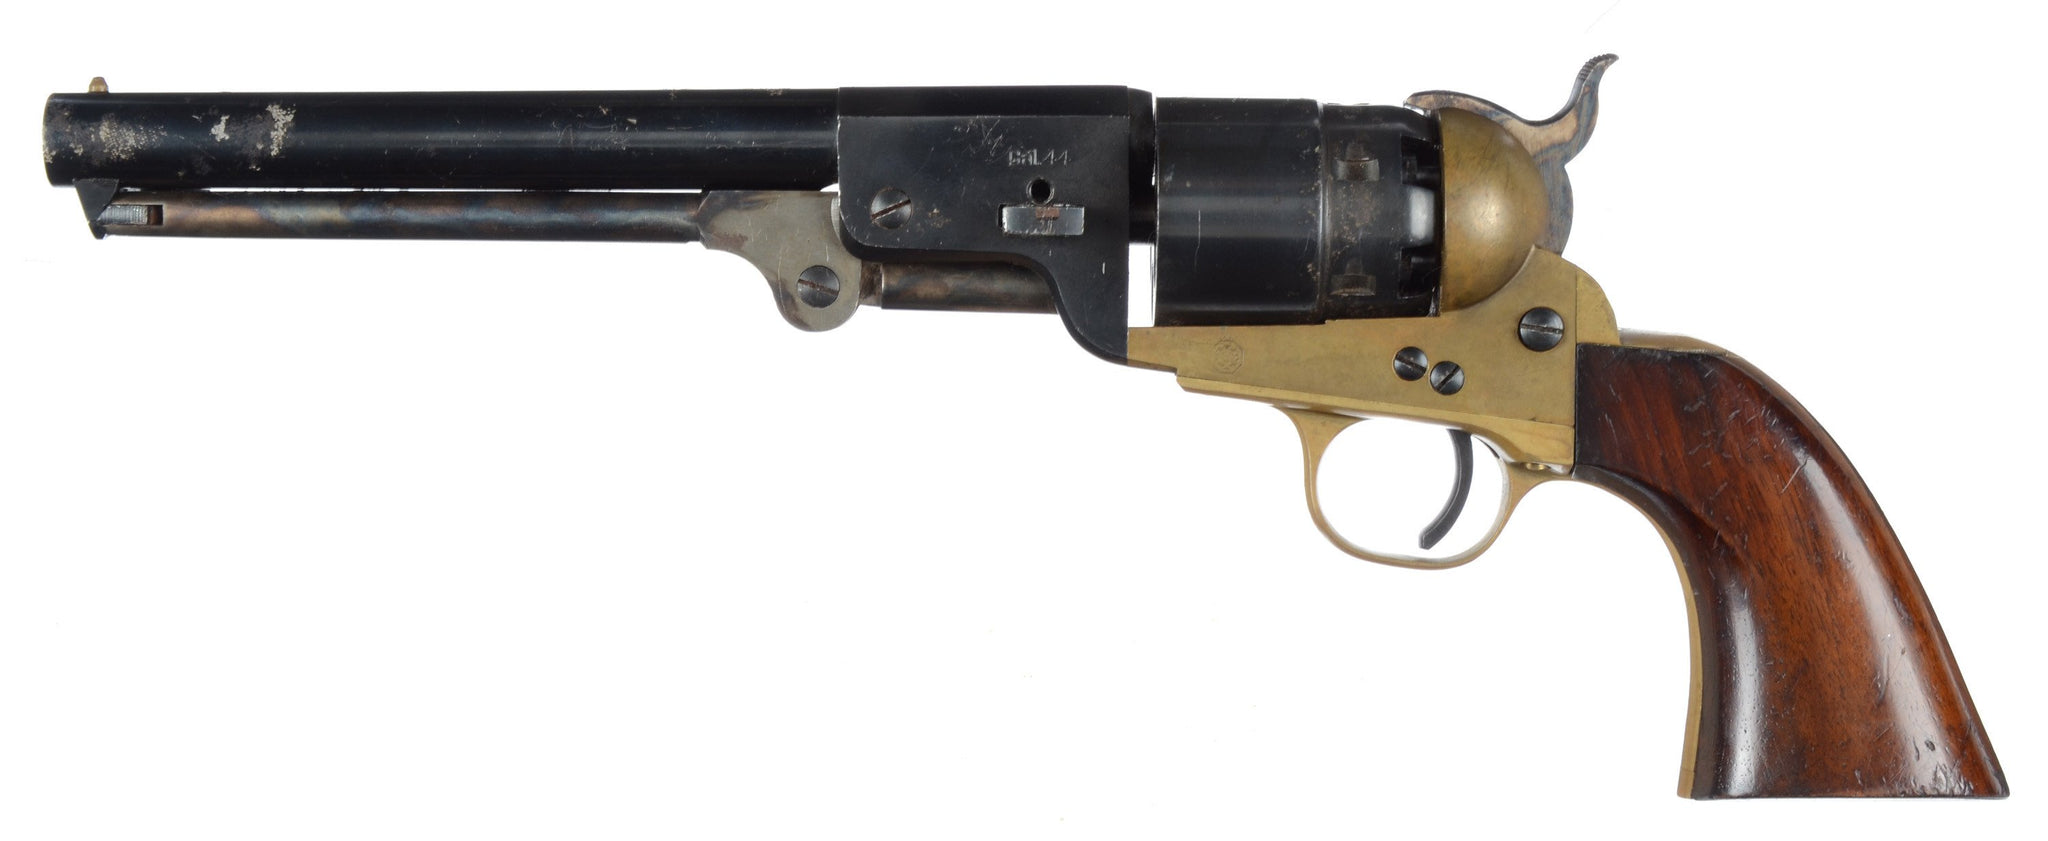 NAVY ARMS 1851 NAVY